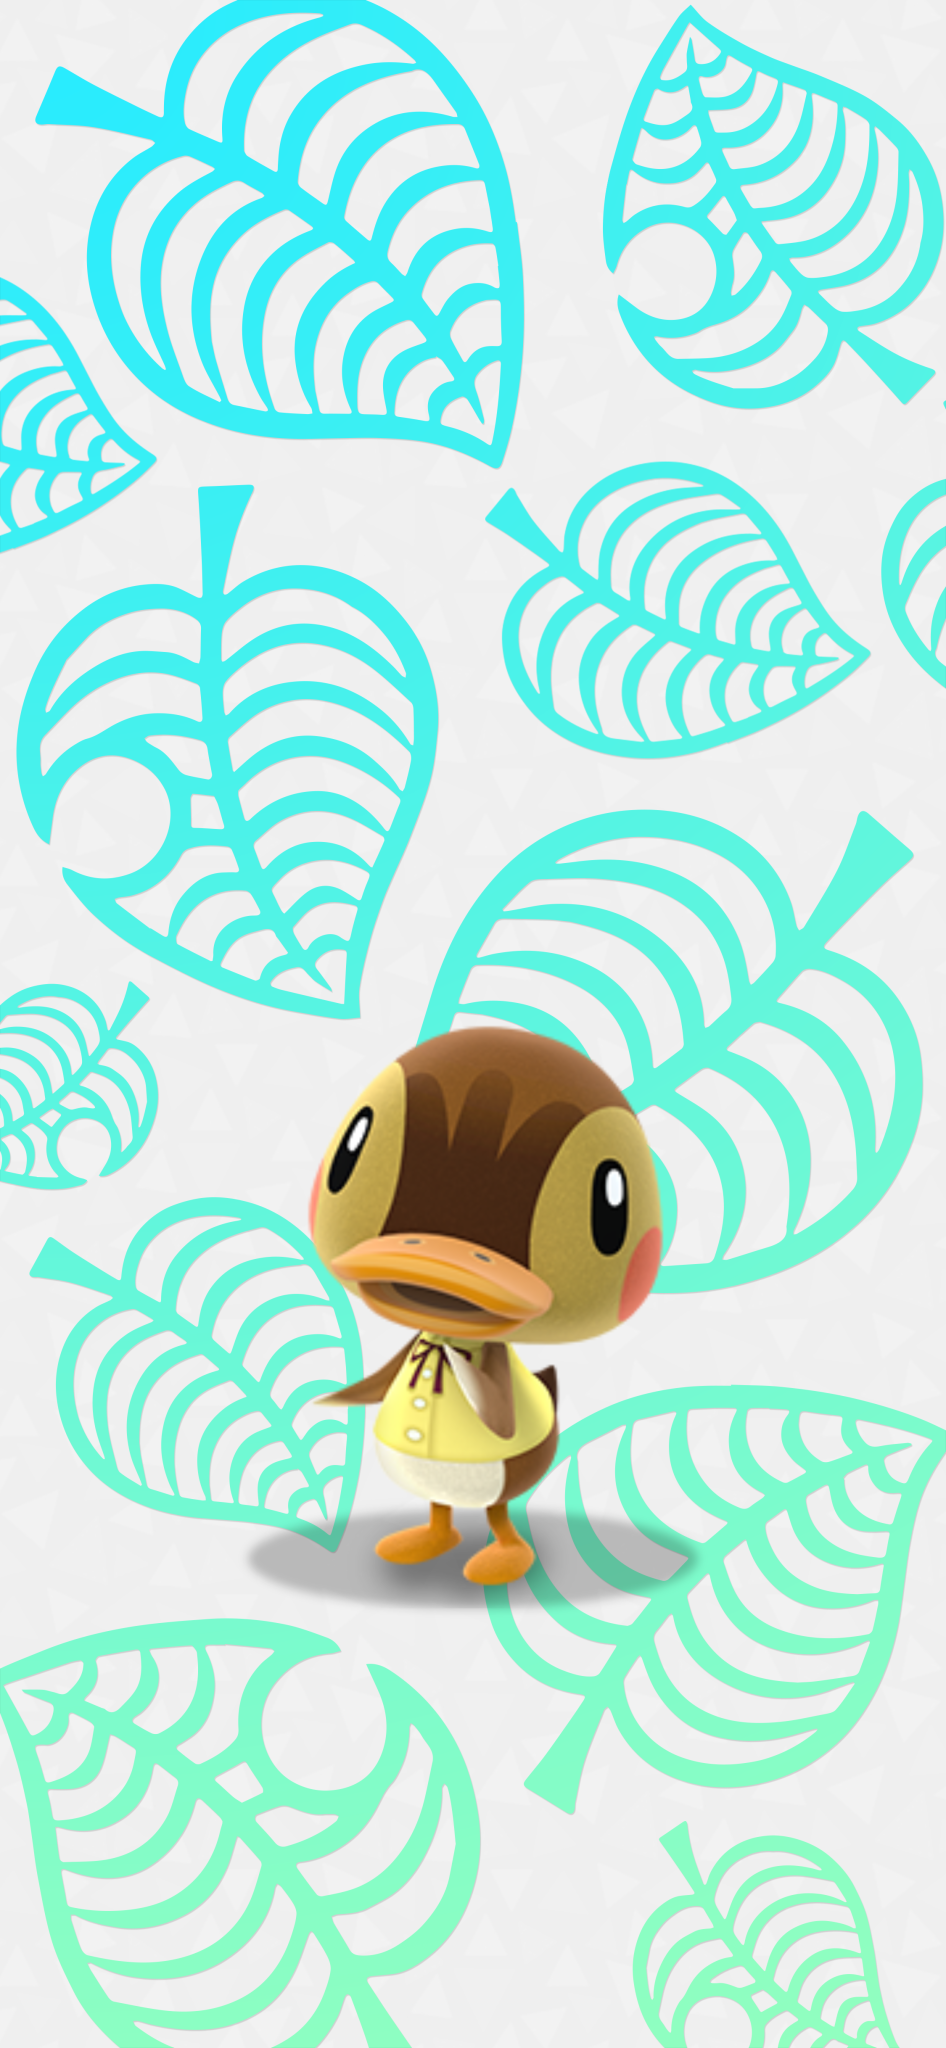 Animal Crossing New Horizons Phone Wallpapers Free For The Community 5 Crossingcharm Animal Crossing Animal Crossing Fan Art Animal Crossing Game